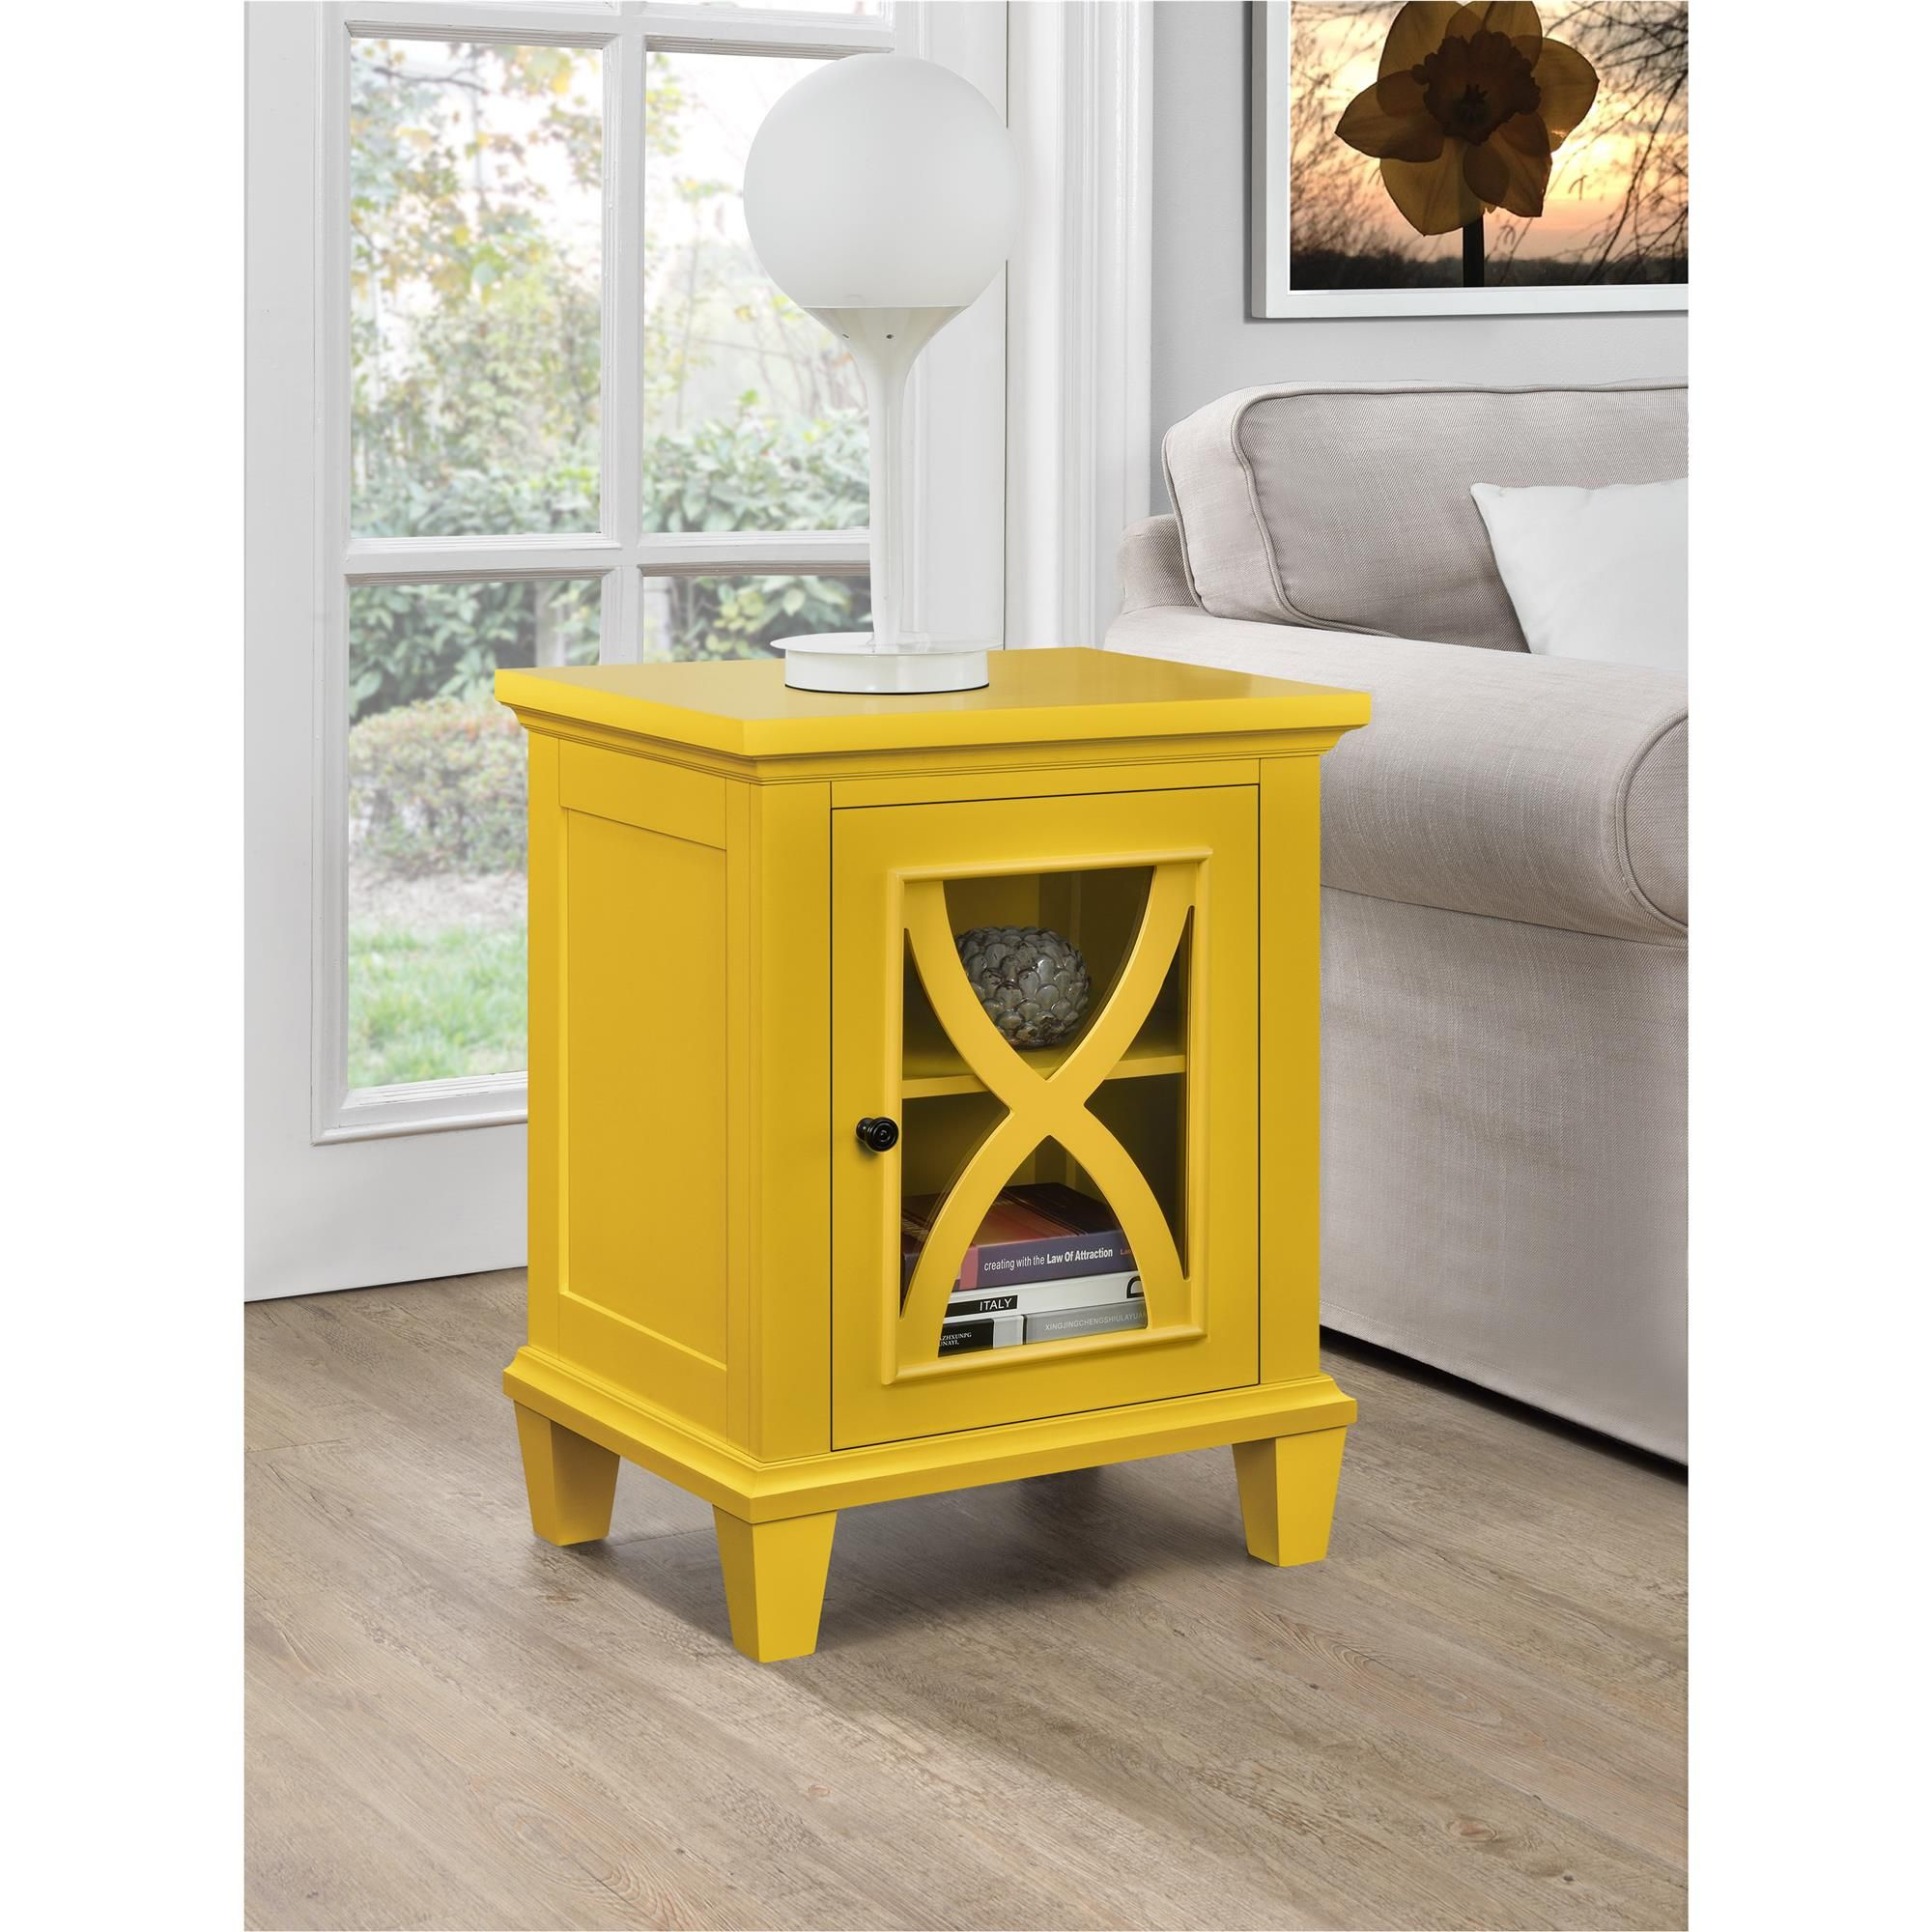 dorel home furnishings ellington yellow single door accent cabinet table goods runners washers marble bistro hampton bay chair cushions black steel legs rustic white console